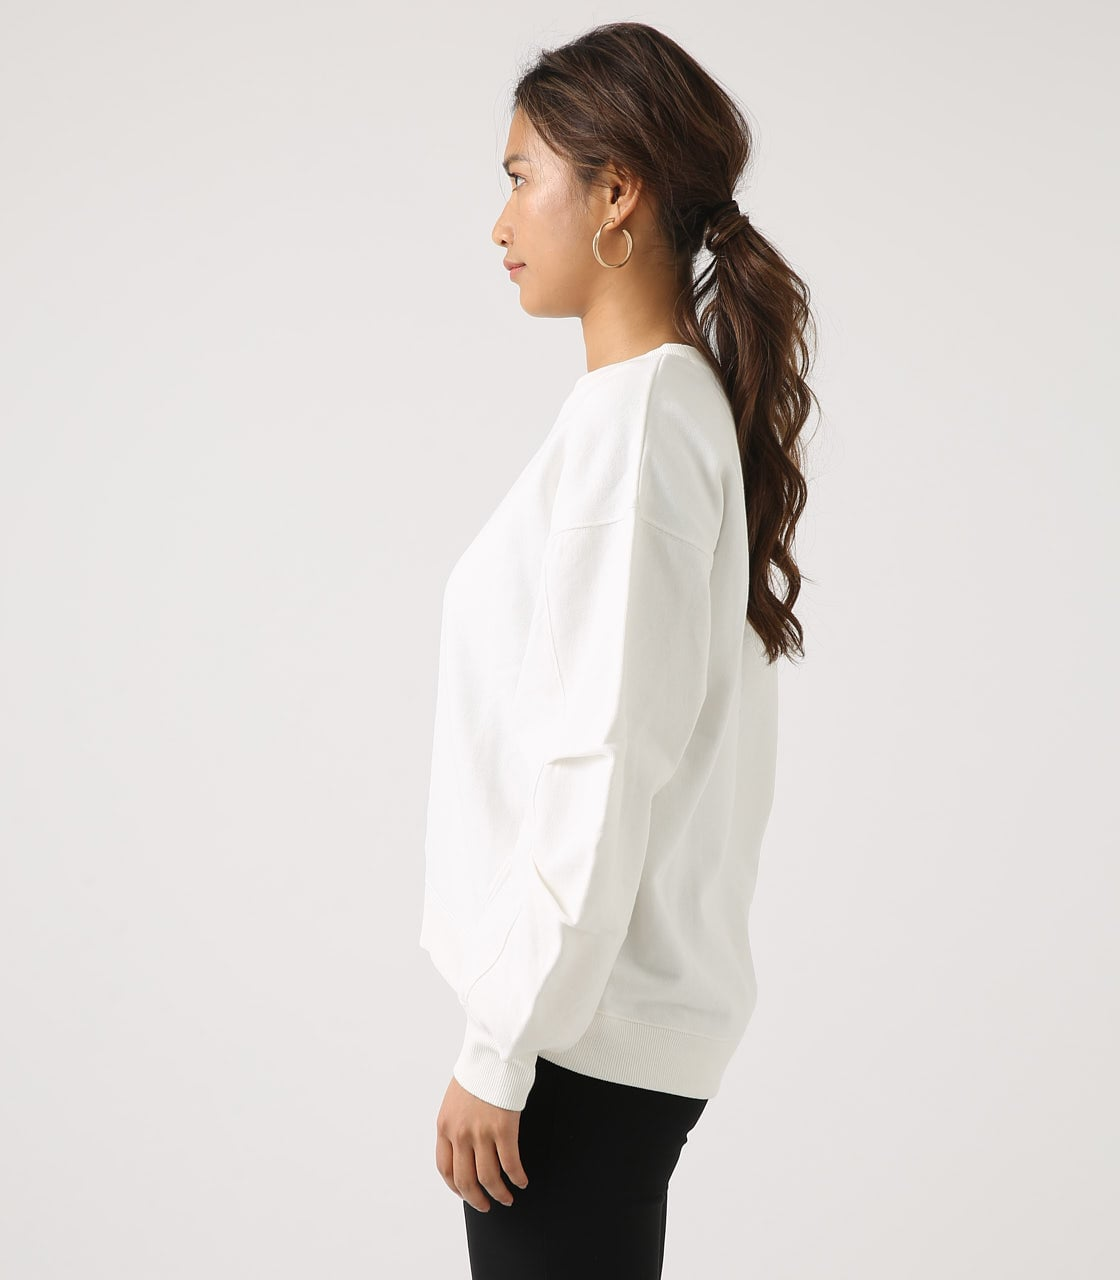 【AZUL BY MOUSSY】SLEEVE TUCK SWEAT TOPS 詳細画像 O/WHT 6